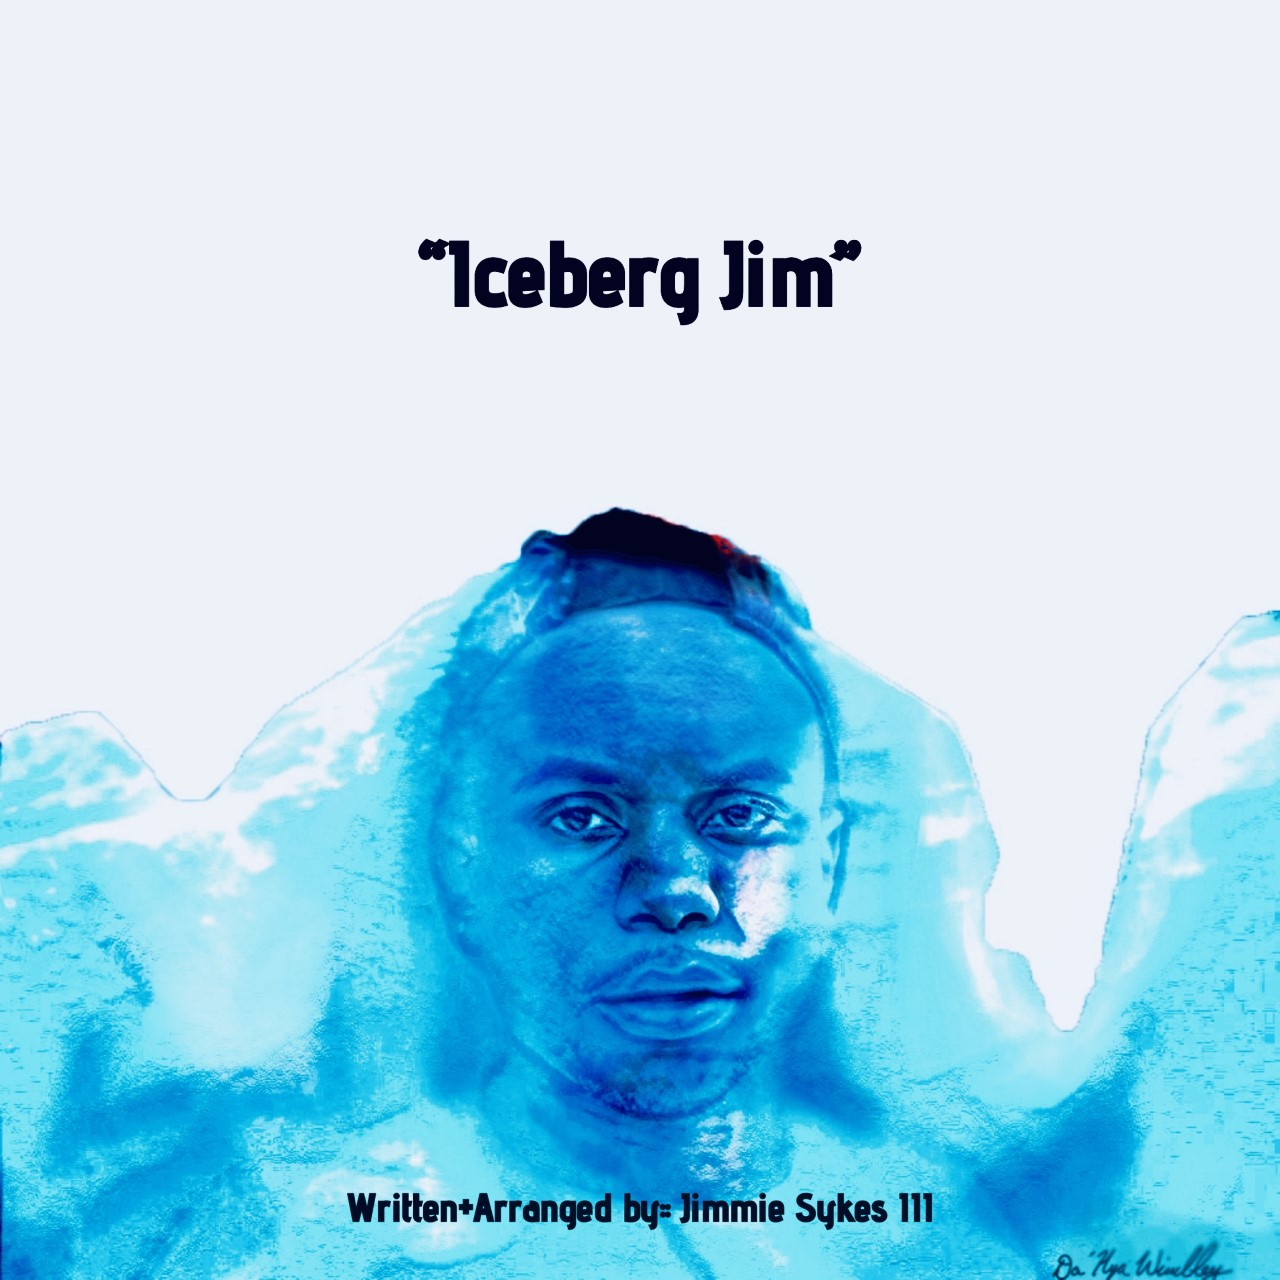 """My first self-published writing piece """"Iceberg Jim"""" is on the way. This is a mere reflection of everyday life for me at some point. """"Iceberg Jim"""" will have eight different chapters of writing, hitting from eight different perspectives of life. This writing piece should be relatable for anyone who ever felt they've lost their place, lost someone special to them, or for those who can't seem to get over some obstacles life throws our way. Artwork done by Da'Nya Wimbley"""